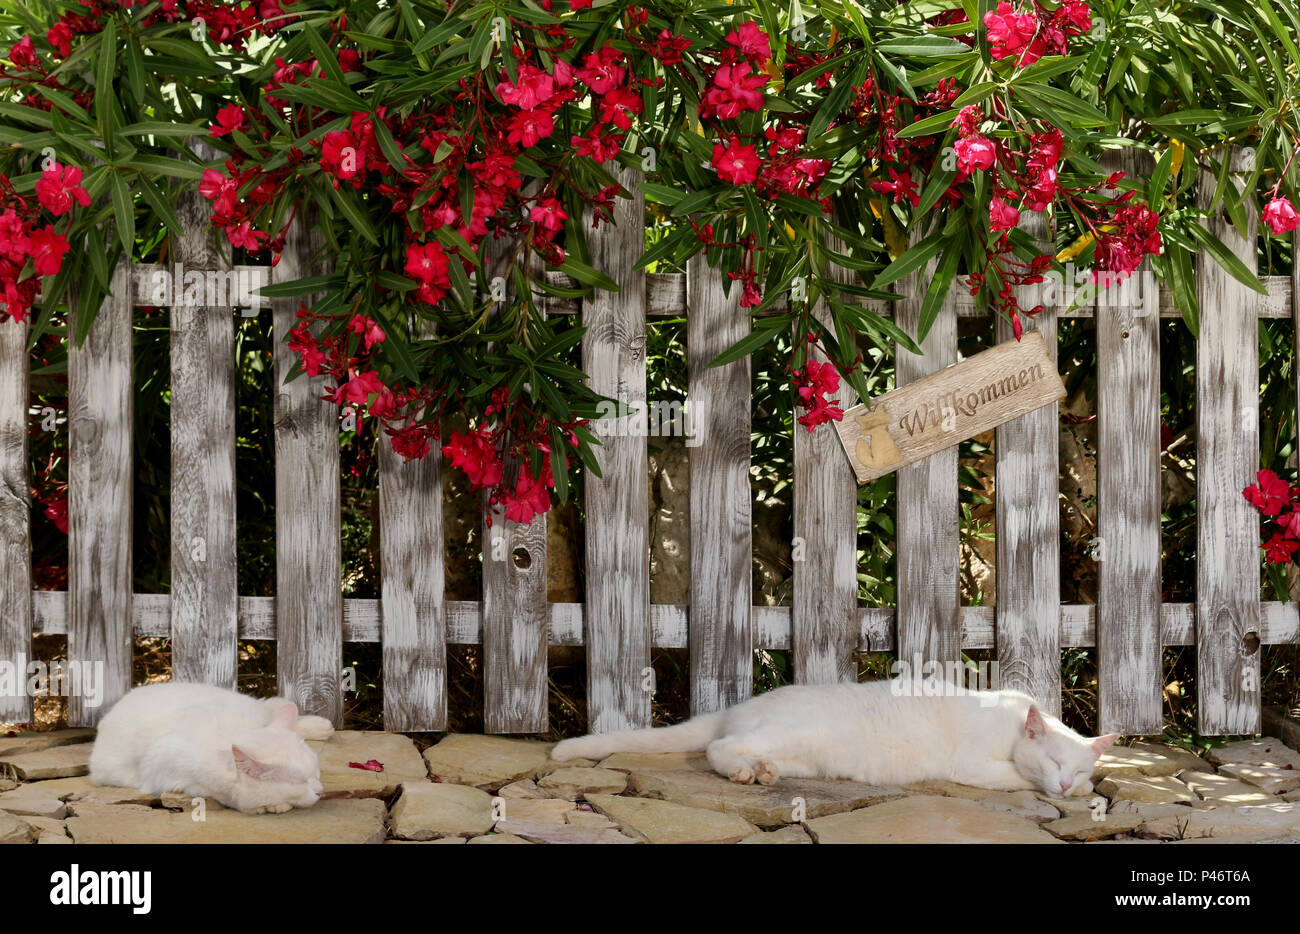 two white cats sleeping at a fence with an oleander shrub - Stock Image